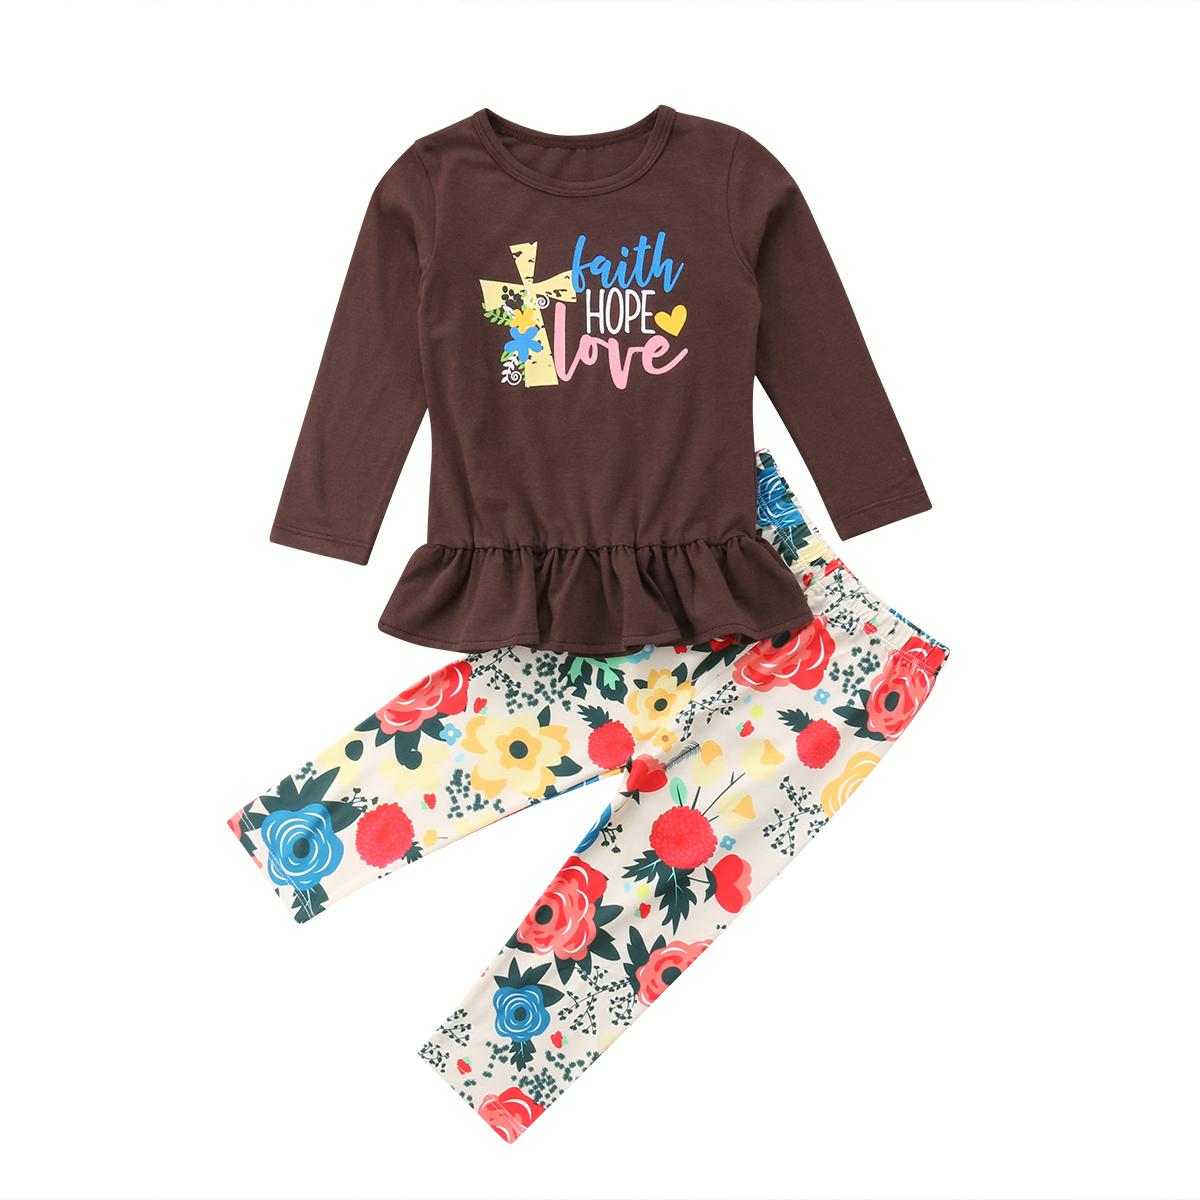 496b18da79f90 Toddler Baby Girl Thanksgiving Floral Clothes Brown Long Sleeves Tops  Shirts Floral Long Pants Autumne Set Outfits